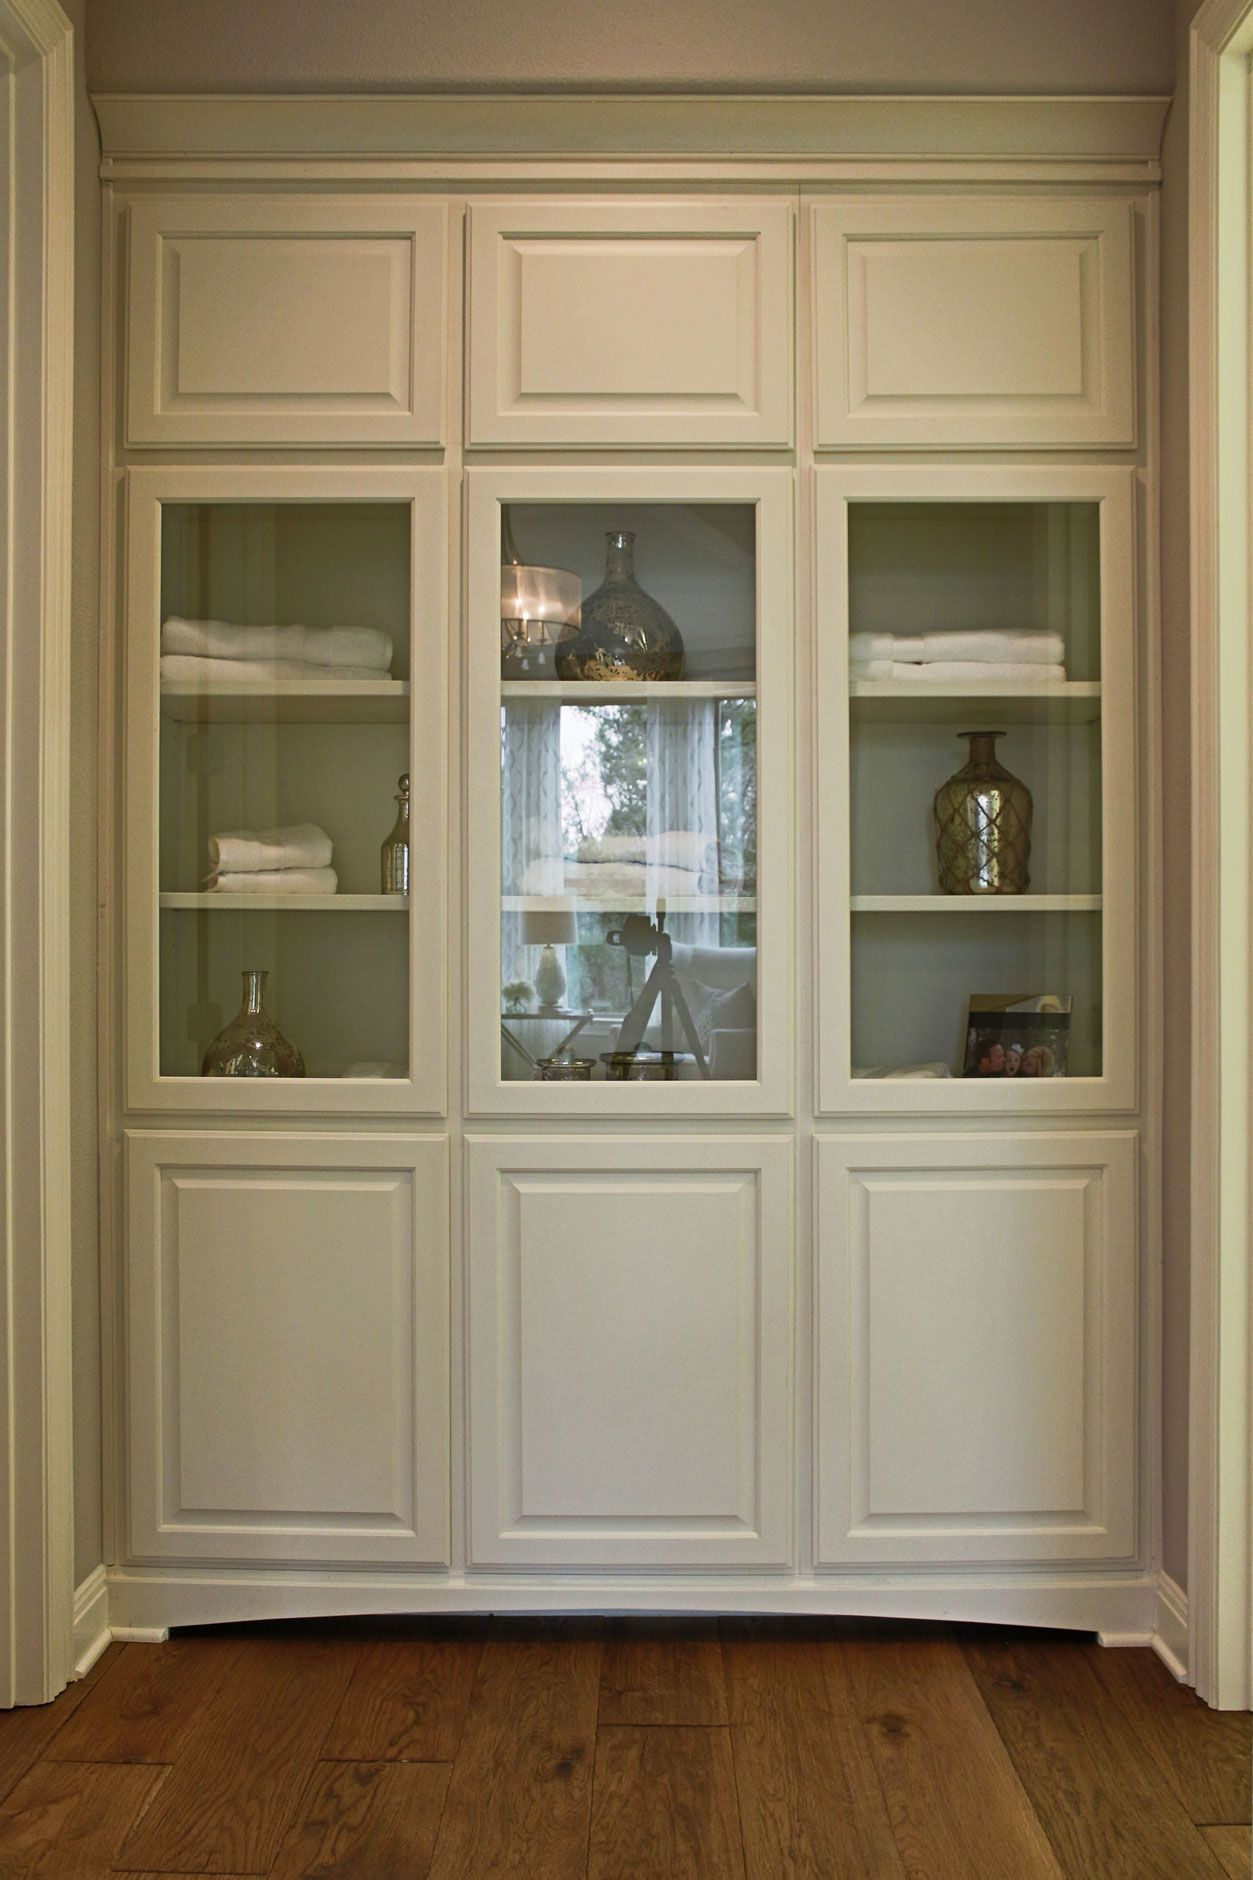 Burrows cabinets 39 bathroom floor to ceiling linen cabinets - Bathroom storage cabinets floor to ceiling ...